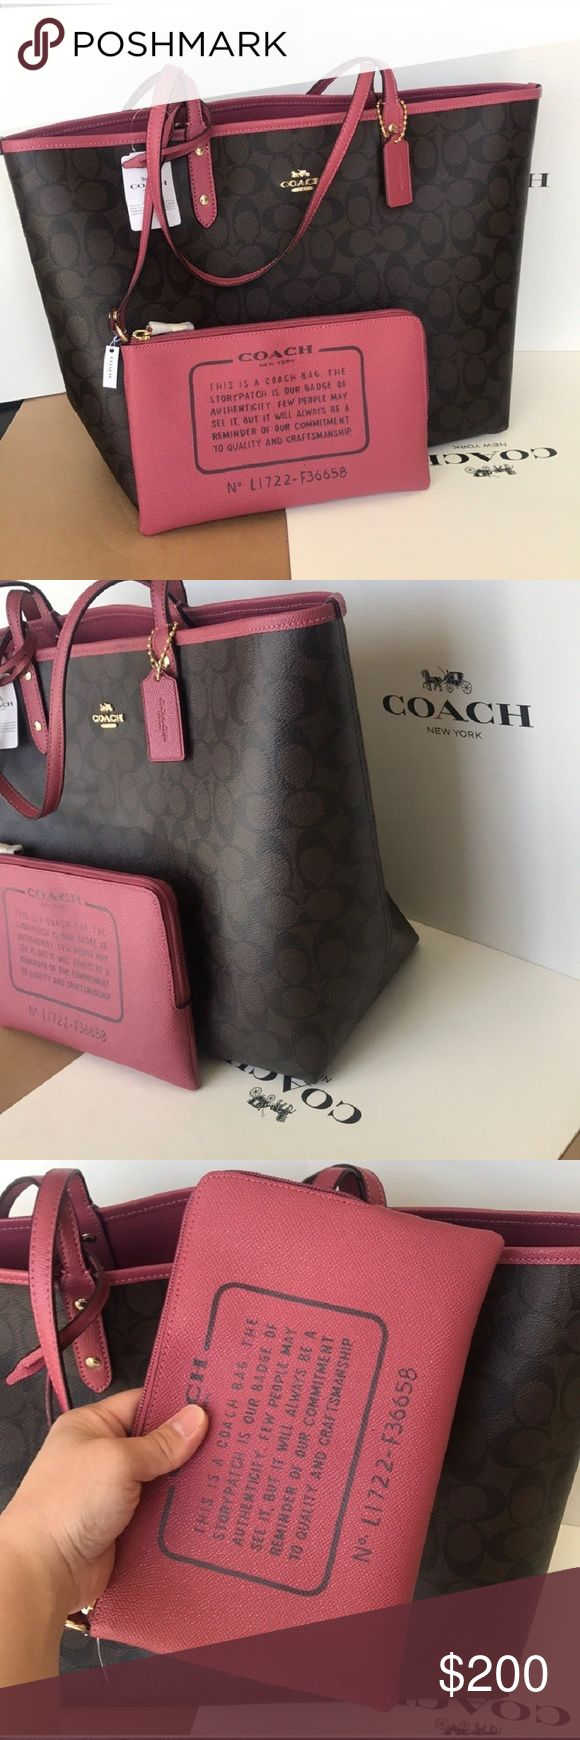 NWT Coach Tote Reversible Pink Leather City * 100% authentic Coach Tote. Completely reversible Color is Rouge which is a beautiful shade of pink Comes with detachable wristlet Brand new with tags attached Gift boxs is available for FREE just pay the extra shipping.  🅿️🅿️ price is $170 with free shipping Coach Bags Totes